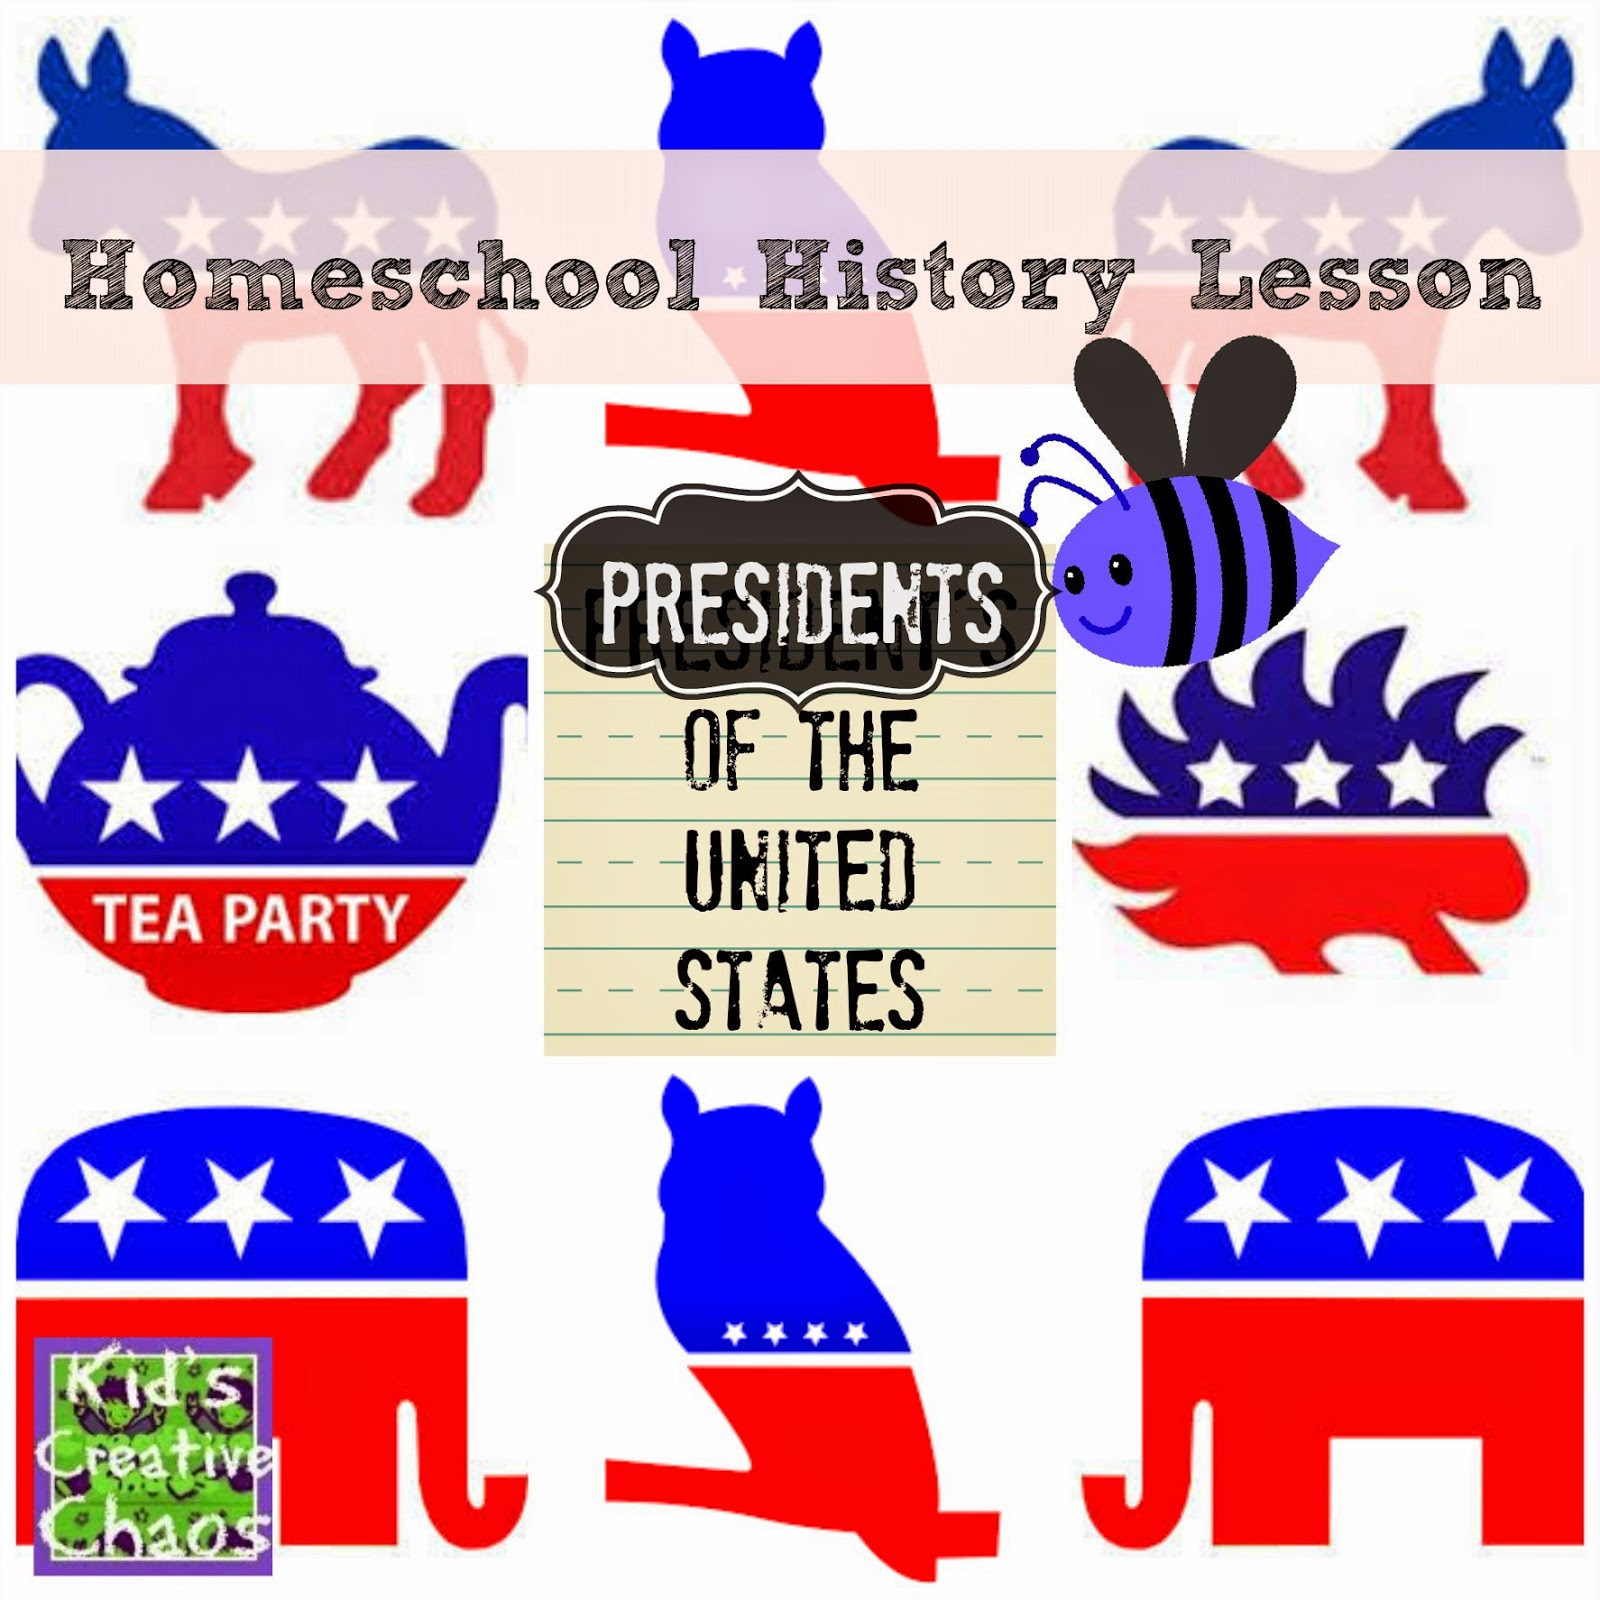 Presidents of the United States Homeschool History Lesson.